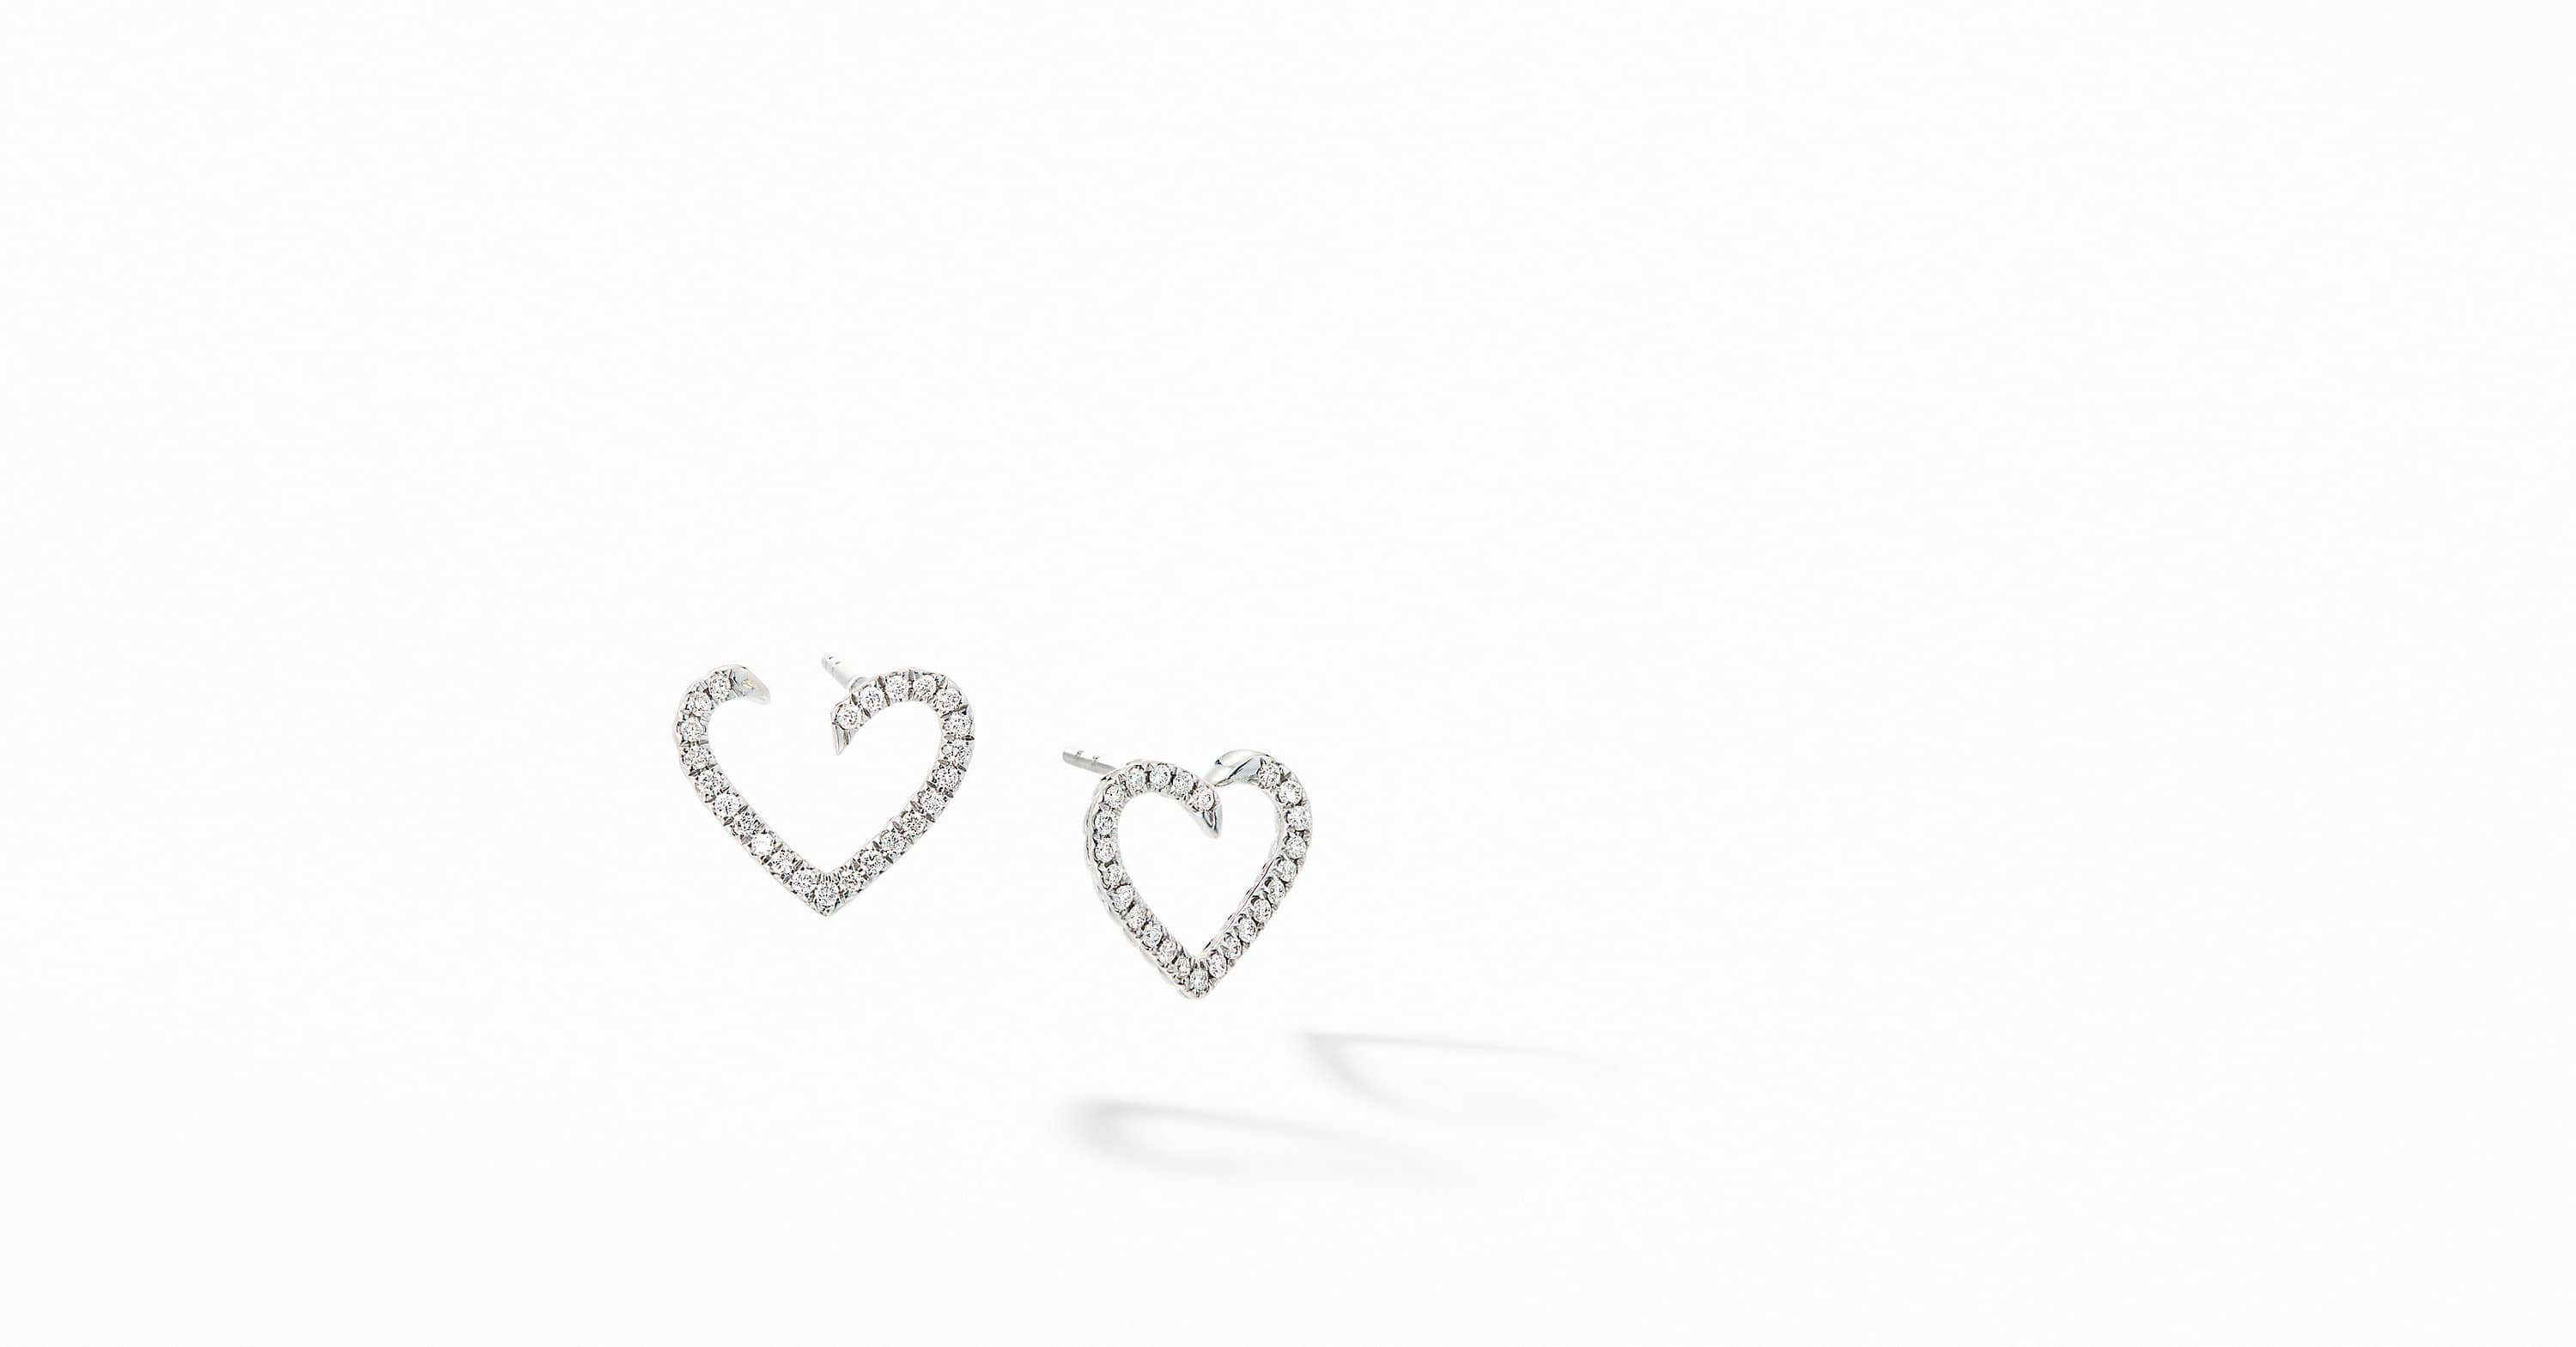 Boucles d'oreilles Cable Collectibles cœur en or blanc 18 carats et diamants